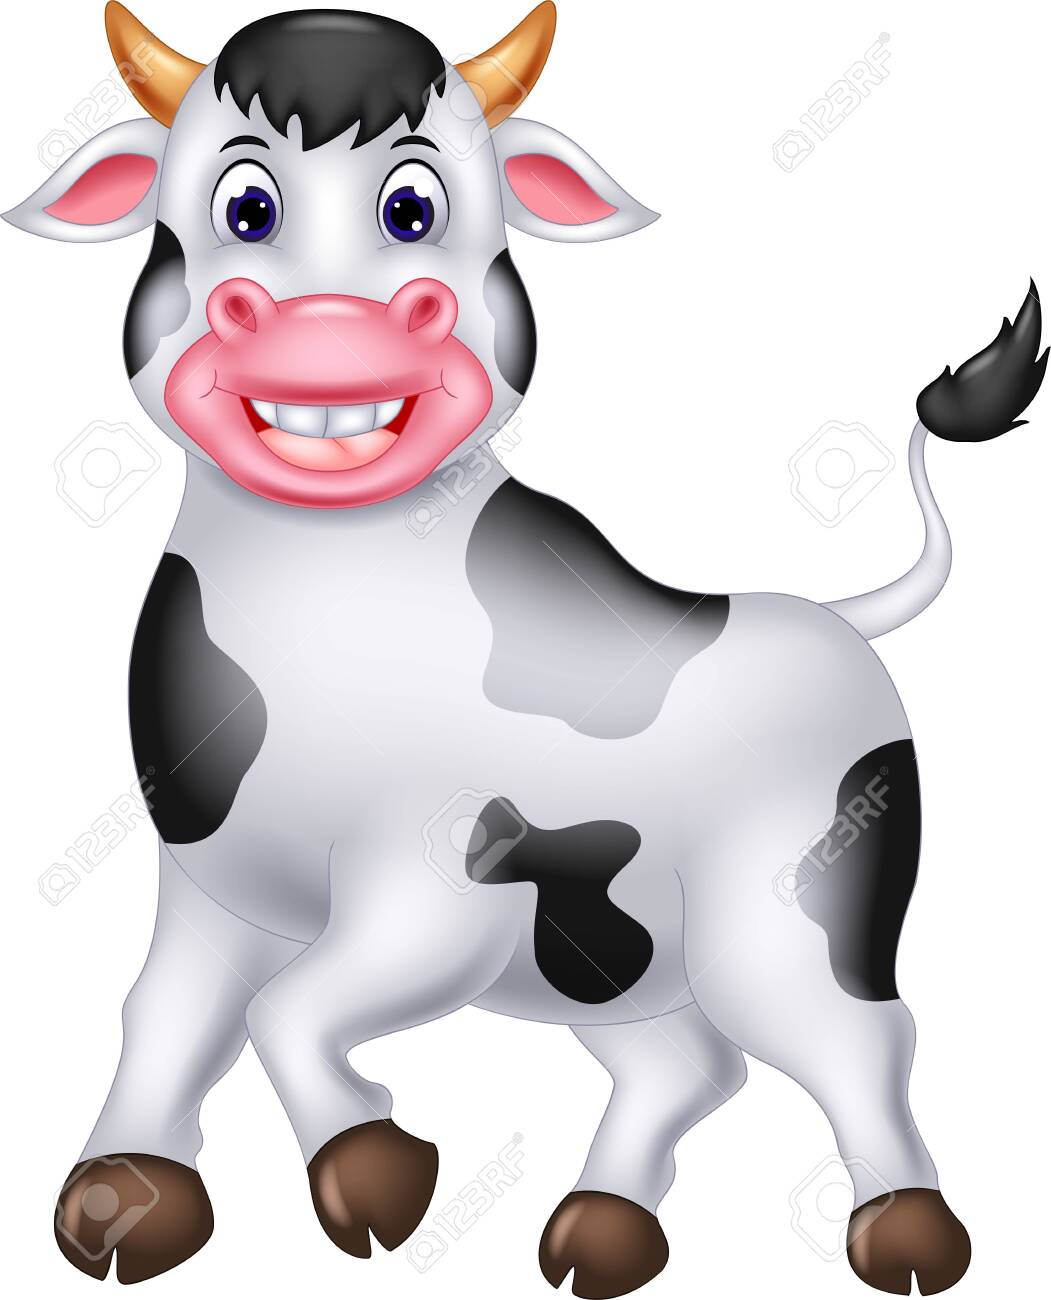 Funny White Cow Cartoon For Your Design - 126667541